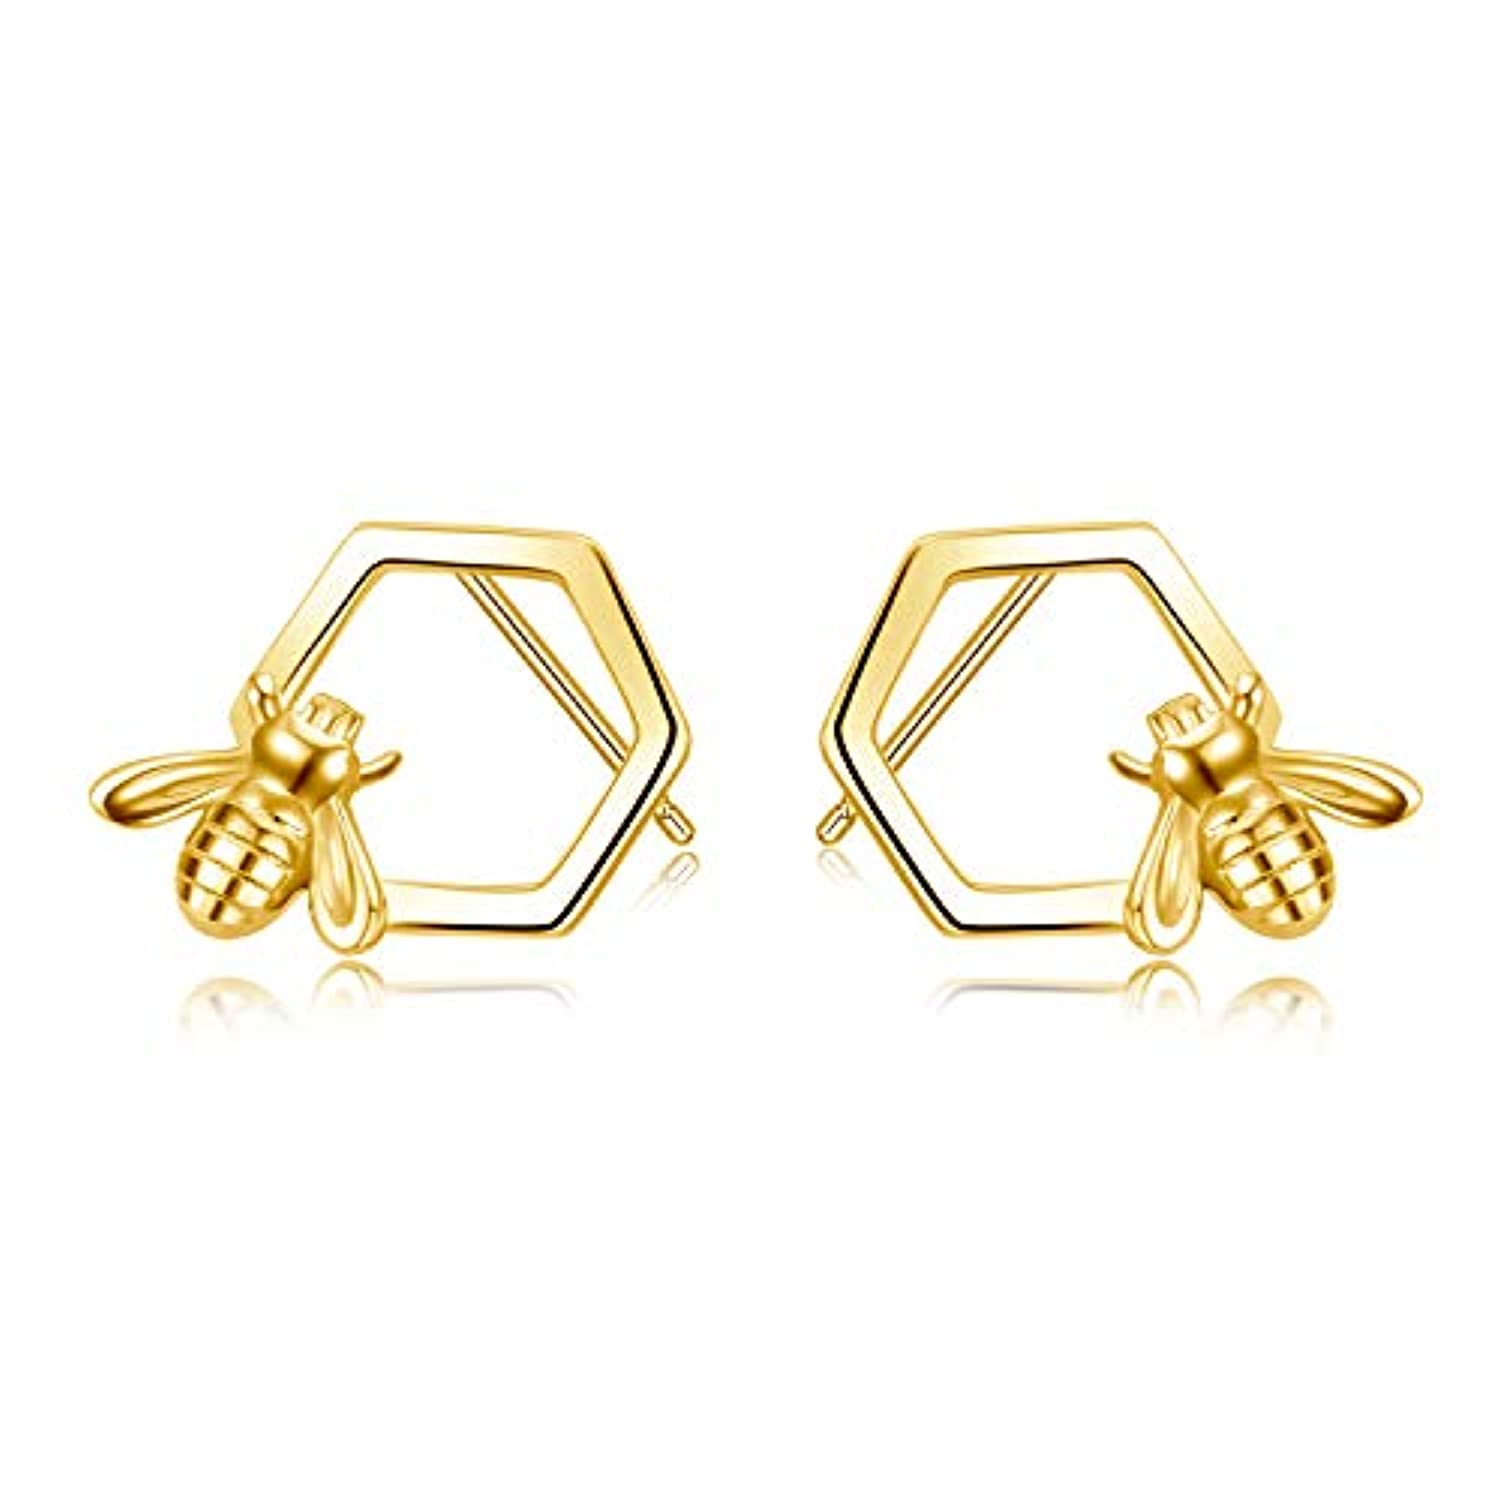 Honeycomb with Bee Stud Earrings